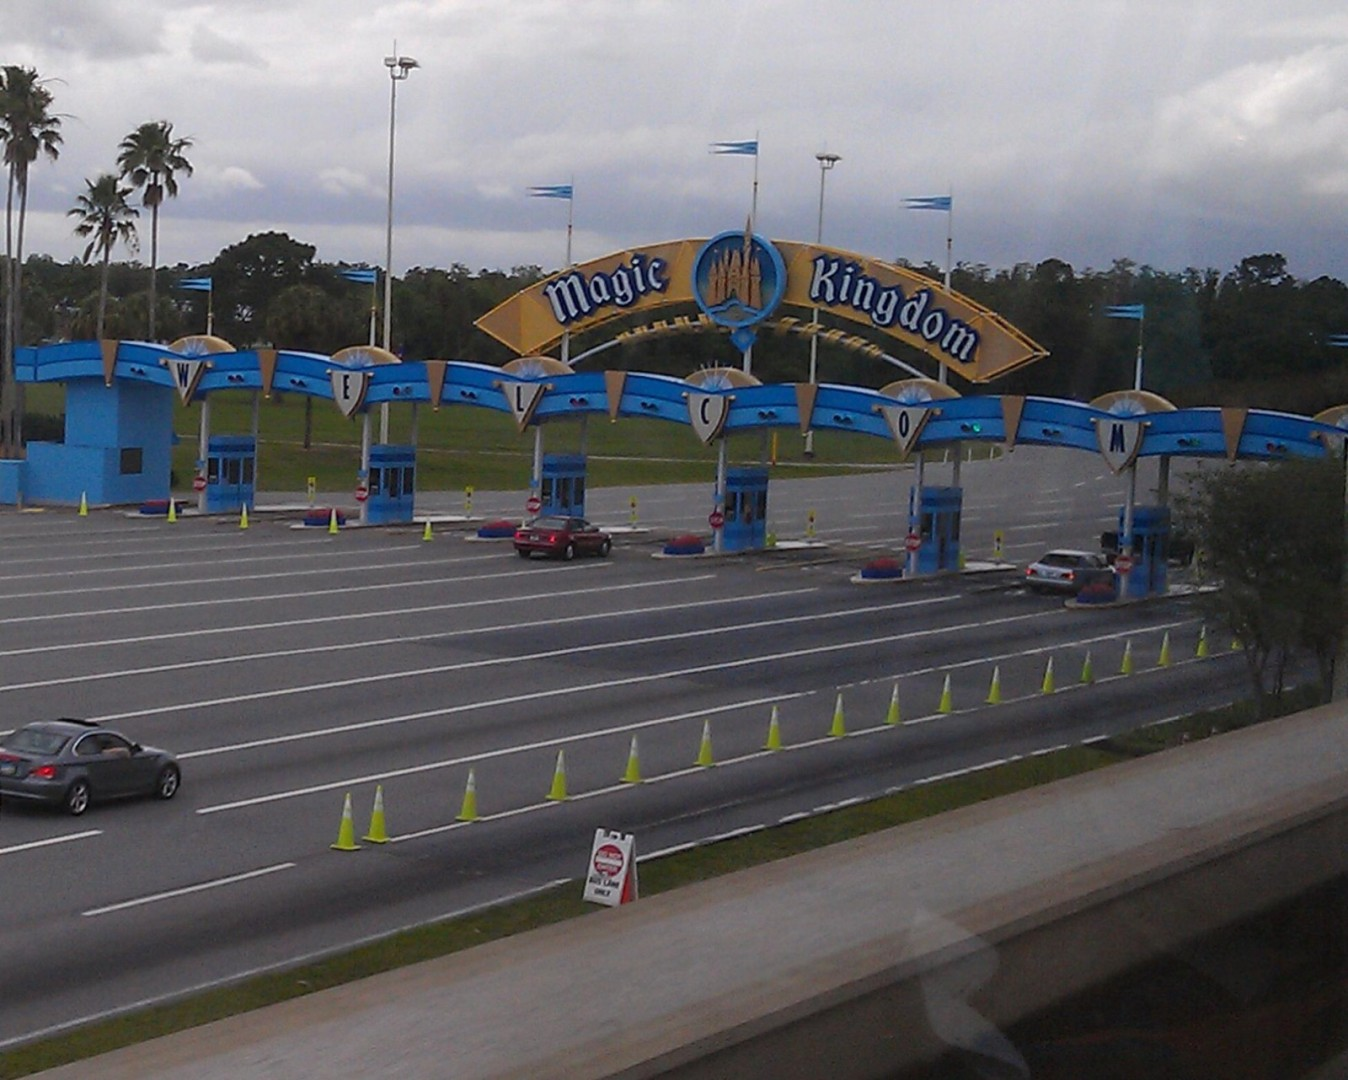 Magic Kingdom toll plaza